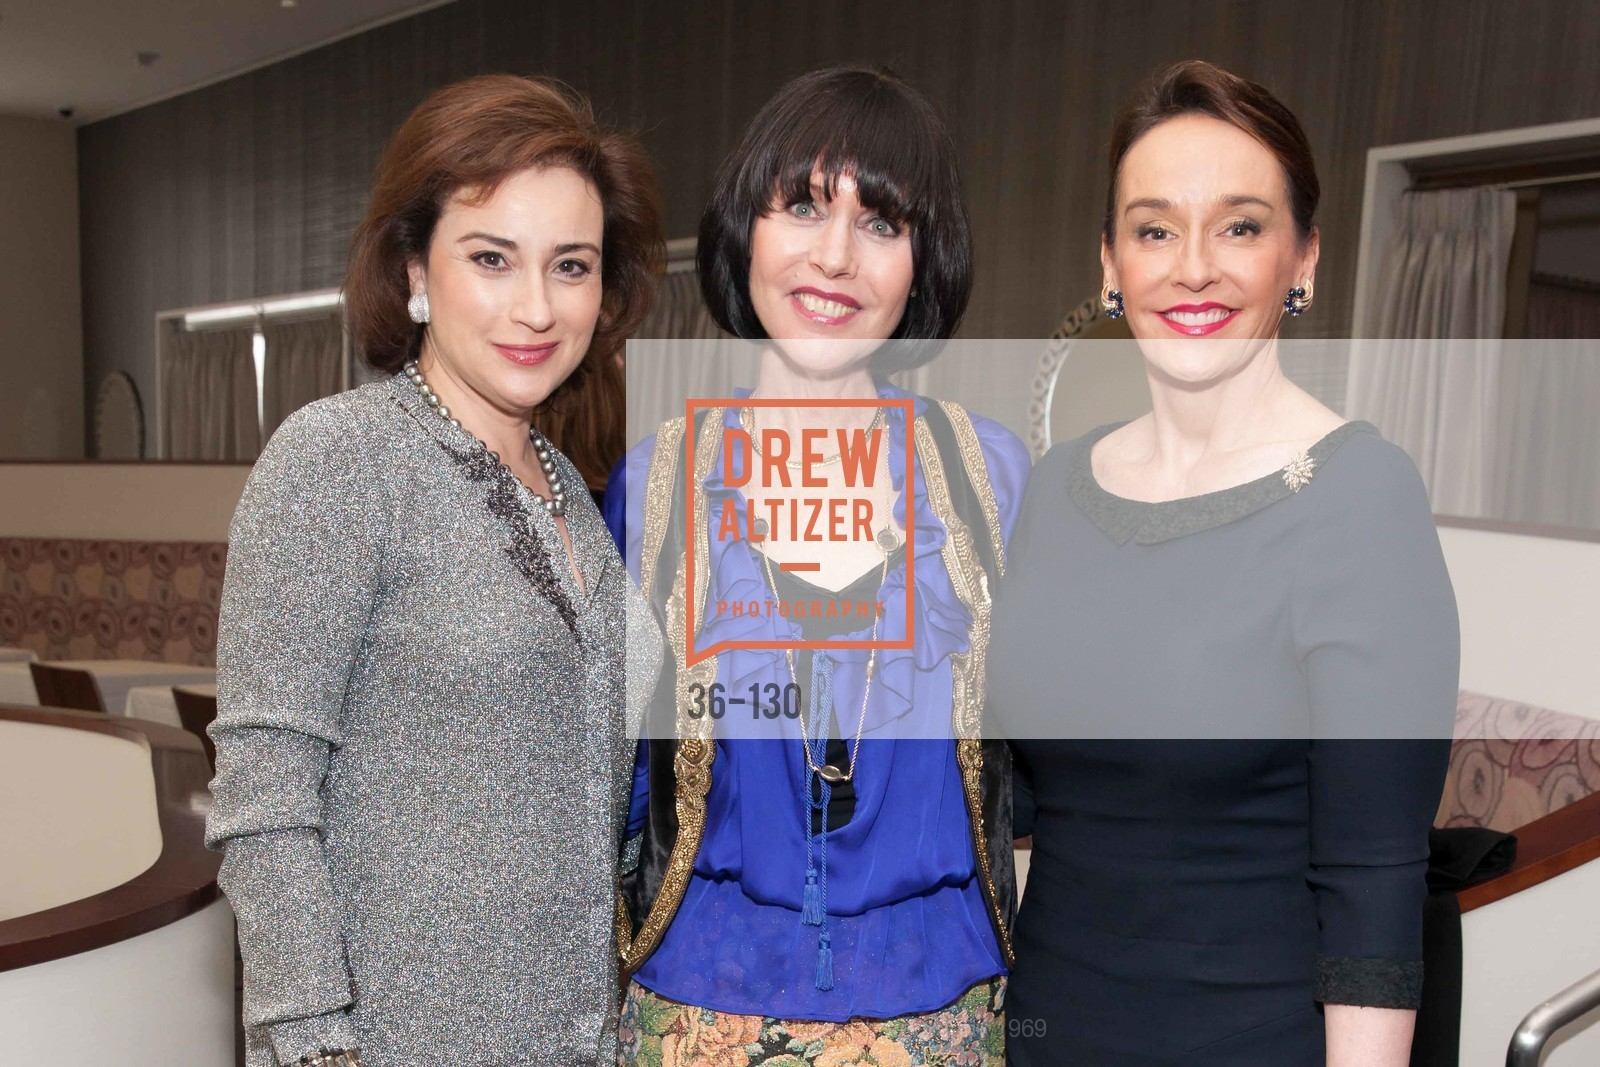 Dolly Chammas, Christine Suppes, Elisa Stephens, Electric Fashion Book Signing with Christine Suppes & Ken Downing, Neiman Marcus, Rotunda, May 26th, 2015,Drew Altizer, Drew Altizer Photography, full-service agency, private events, San Francisco photographer, photographer california